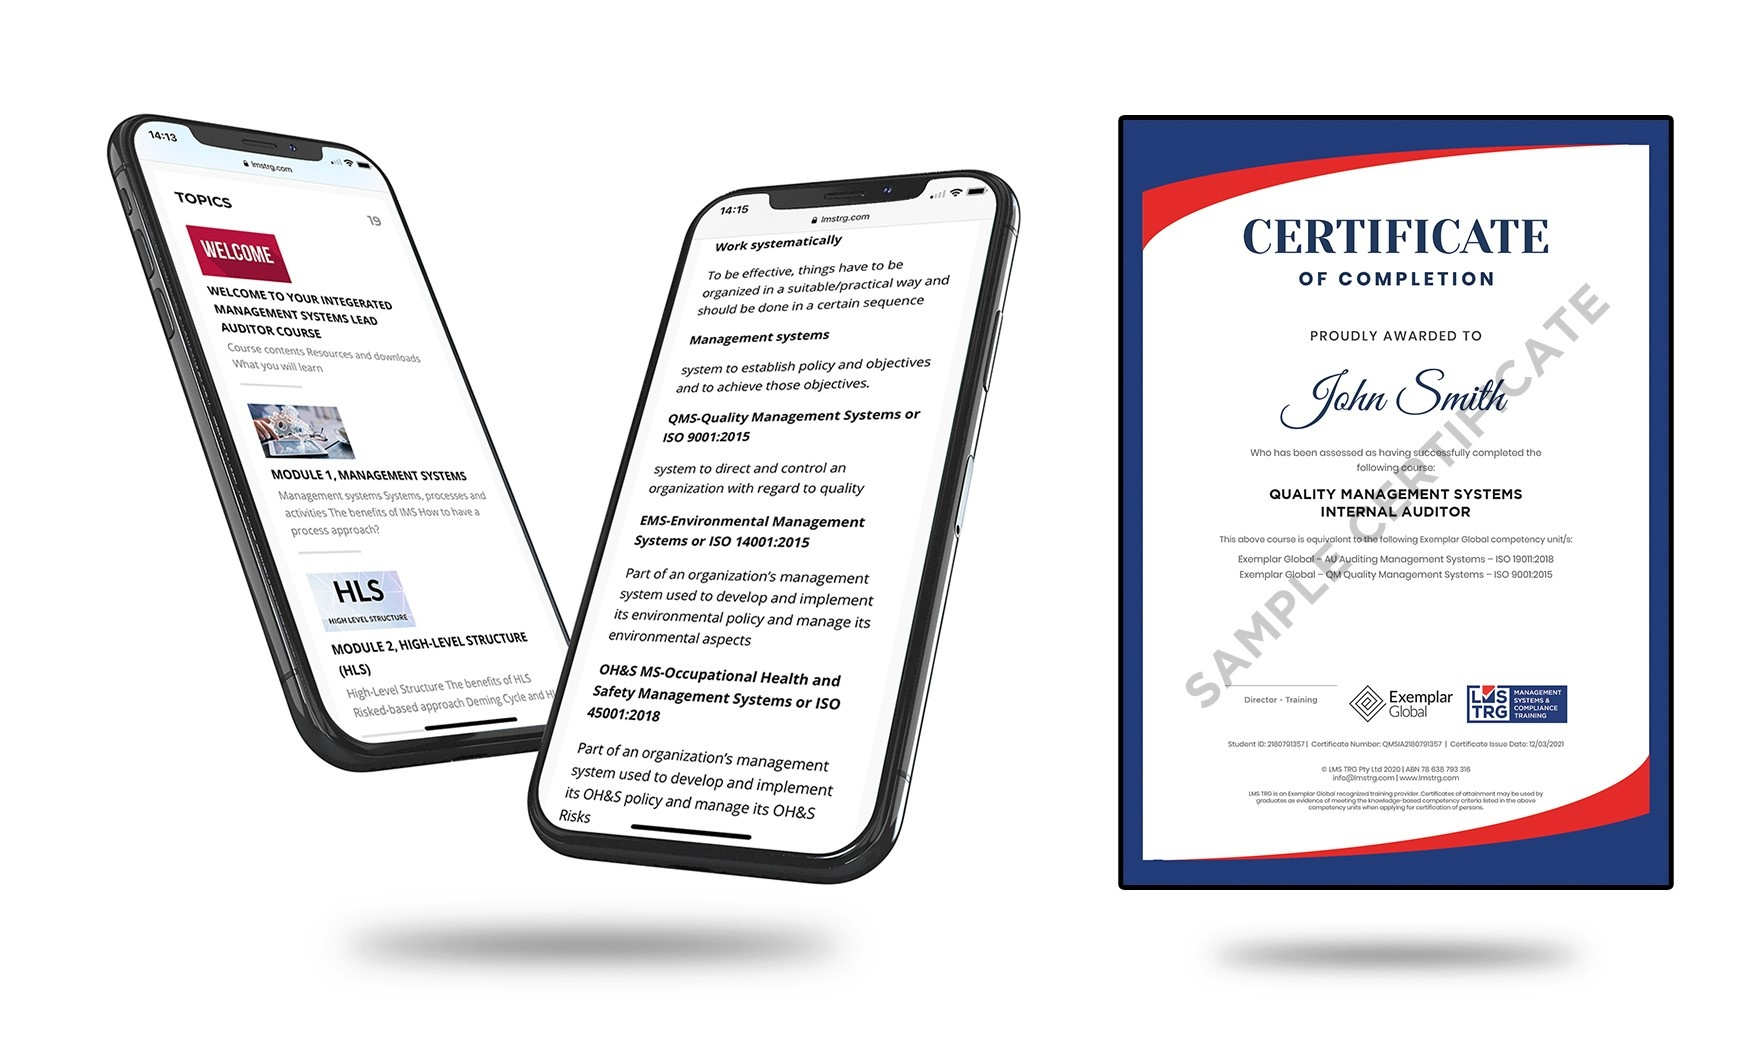 ISO 9001 Quality Management Systems (QMS) Internal Auditor Certificate